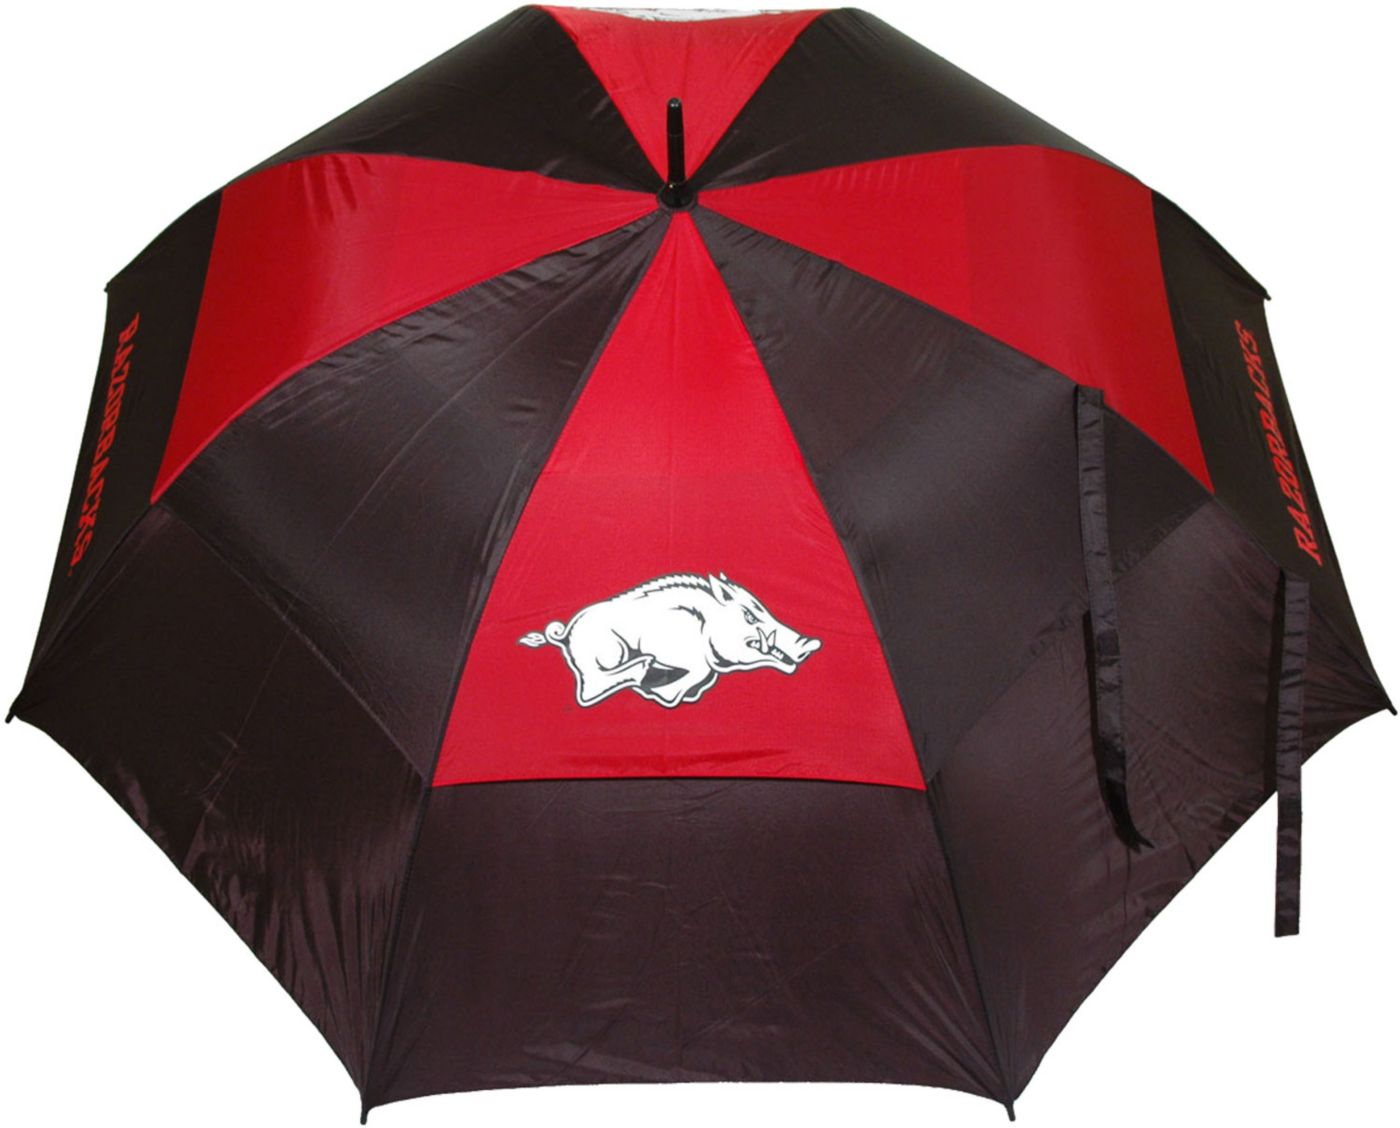 Team Golf Arkansas Razorbacks Umbrella